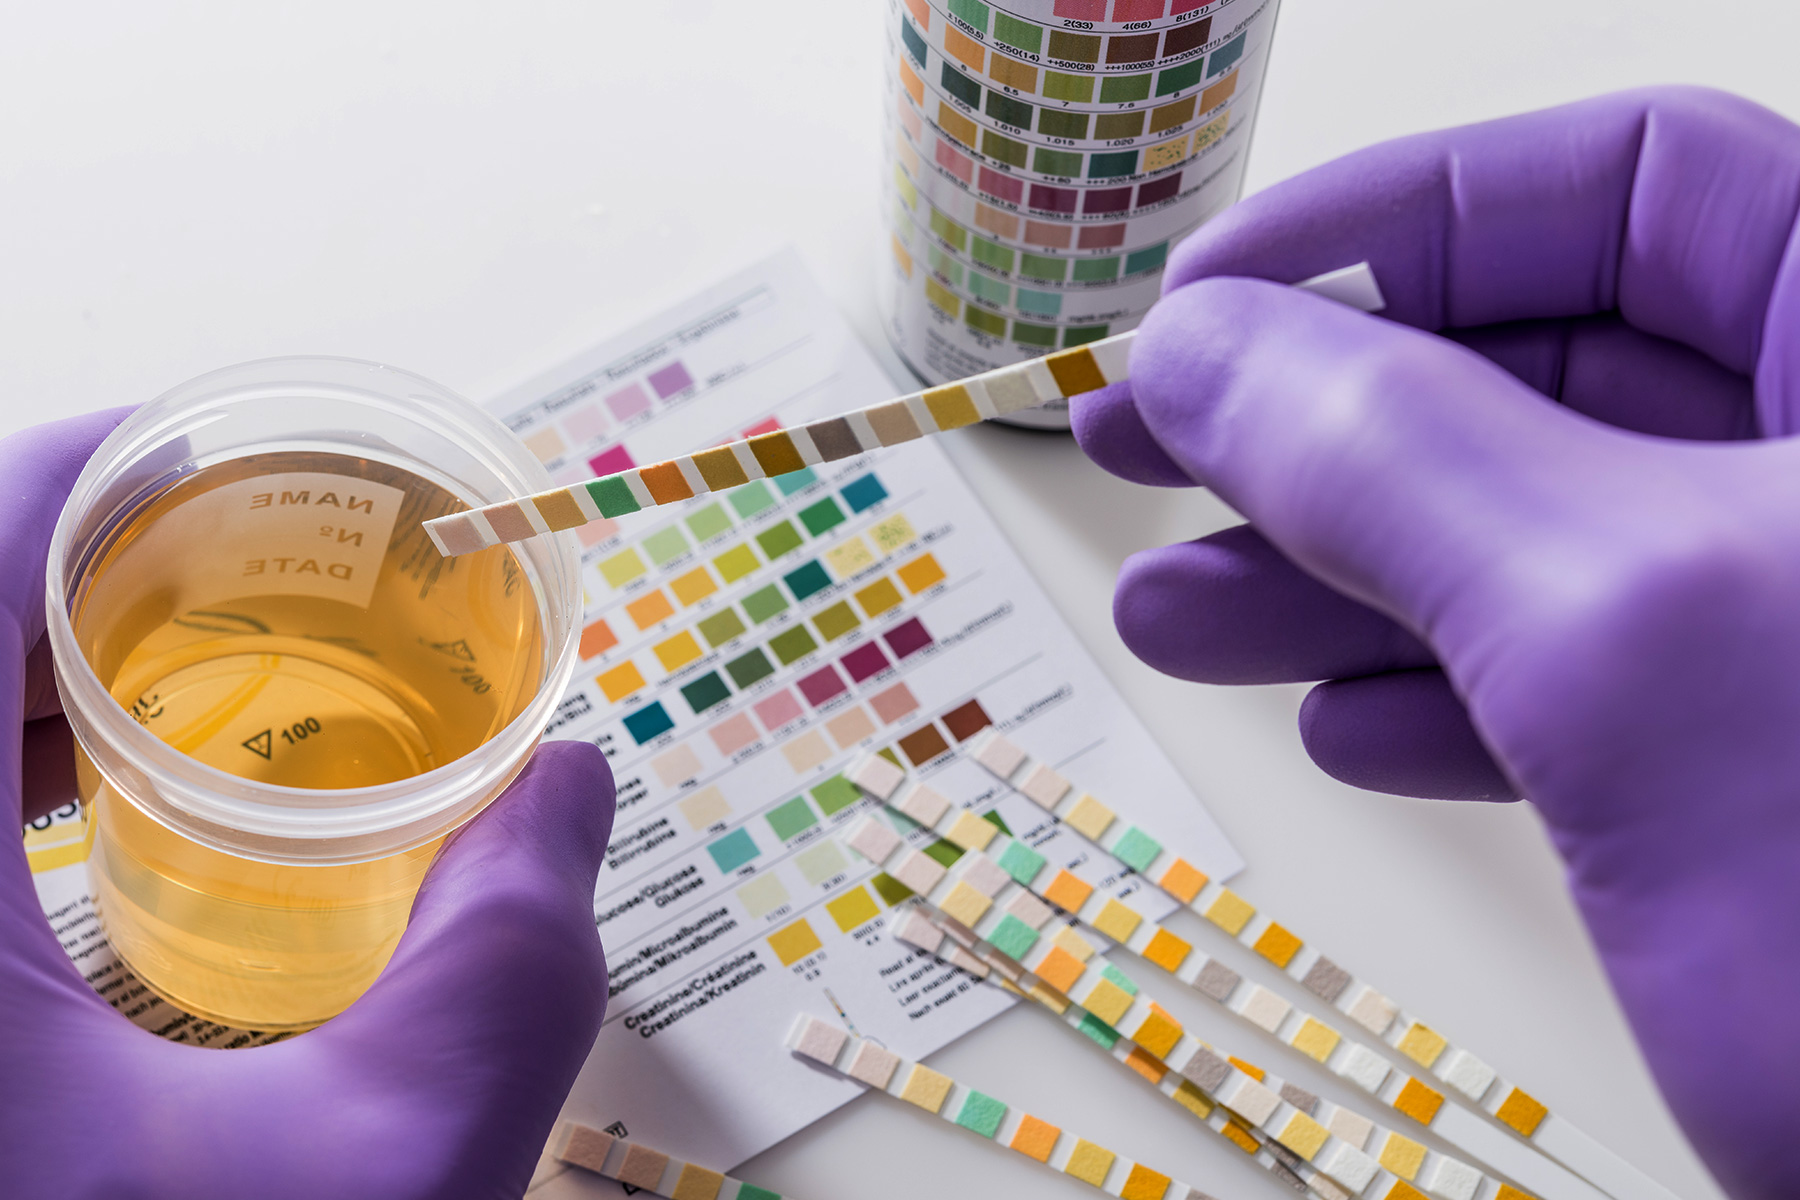 Can you fail a drug test when using delta-8 THC? How do drug tests work?